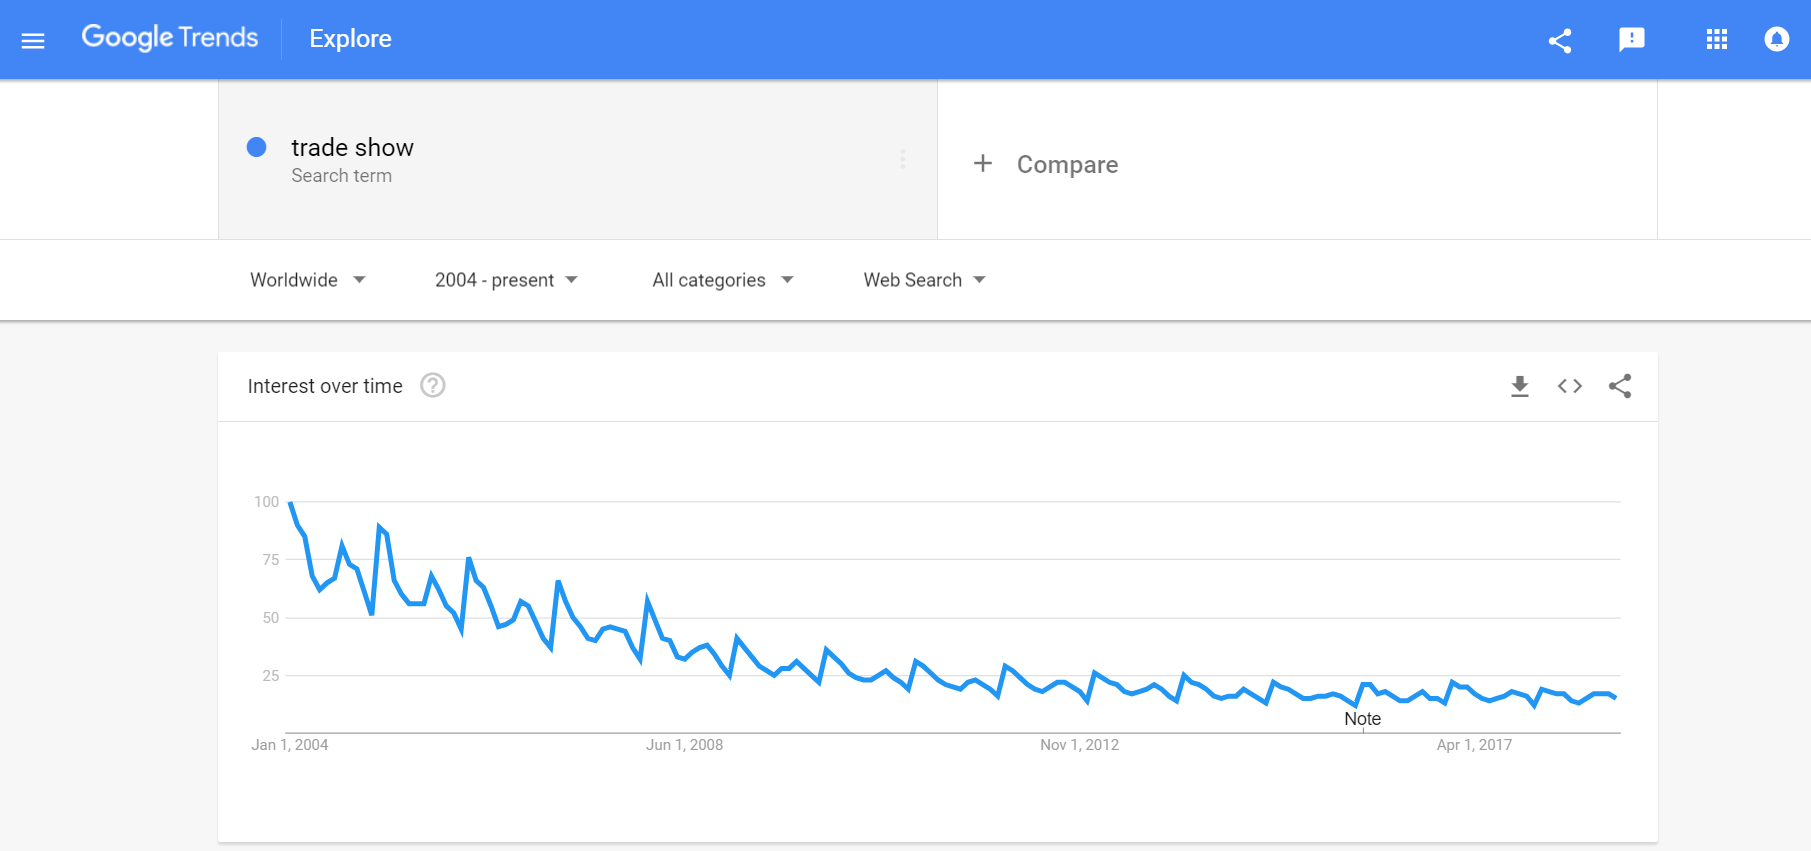 Startup Trade Show Google Trend